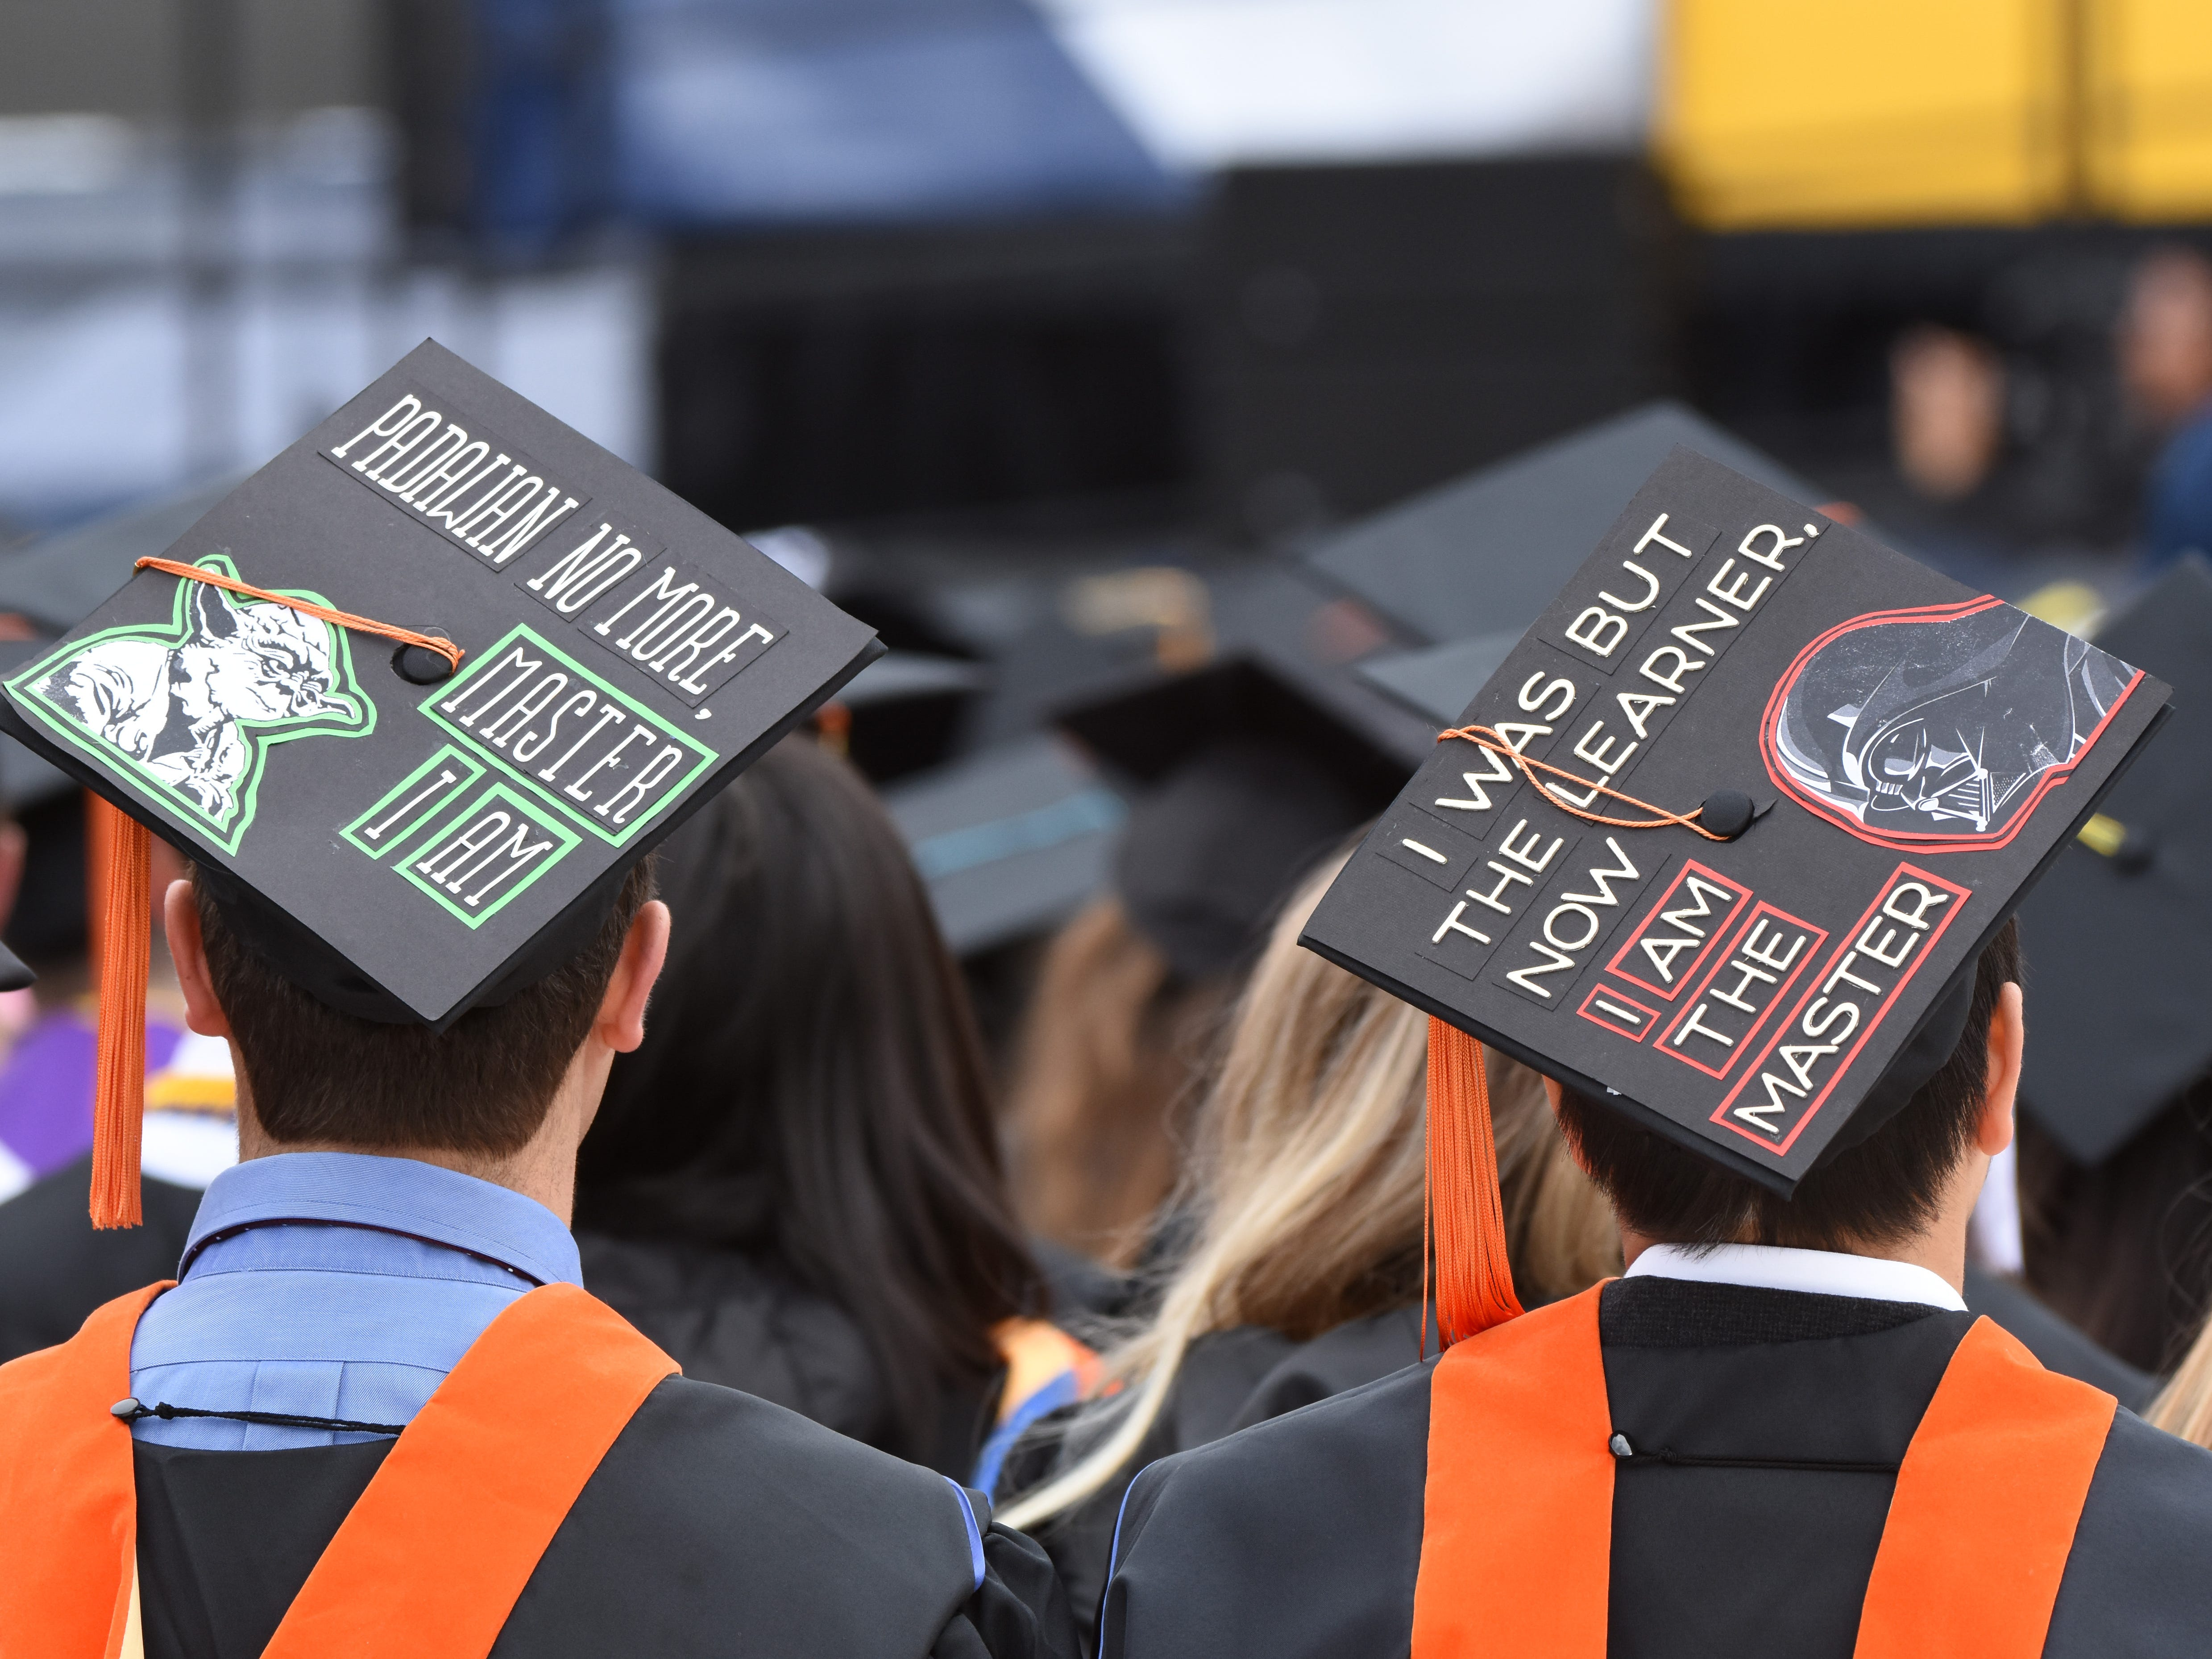 University of Michigan' students decorated their caps in a tribute to Star Wars.